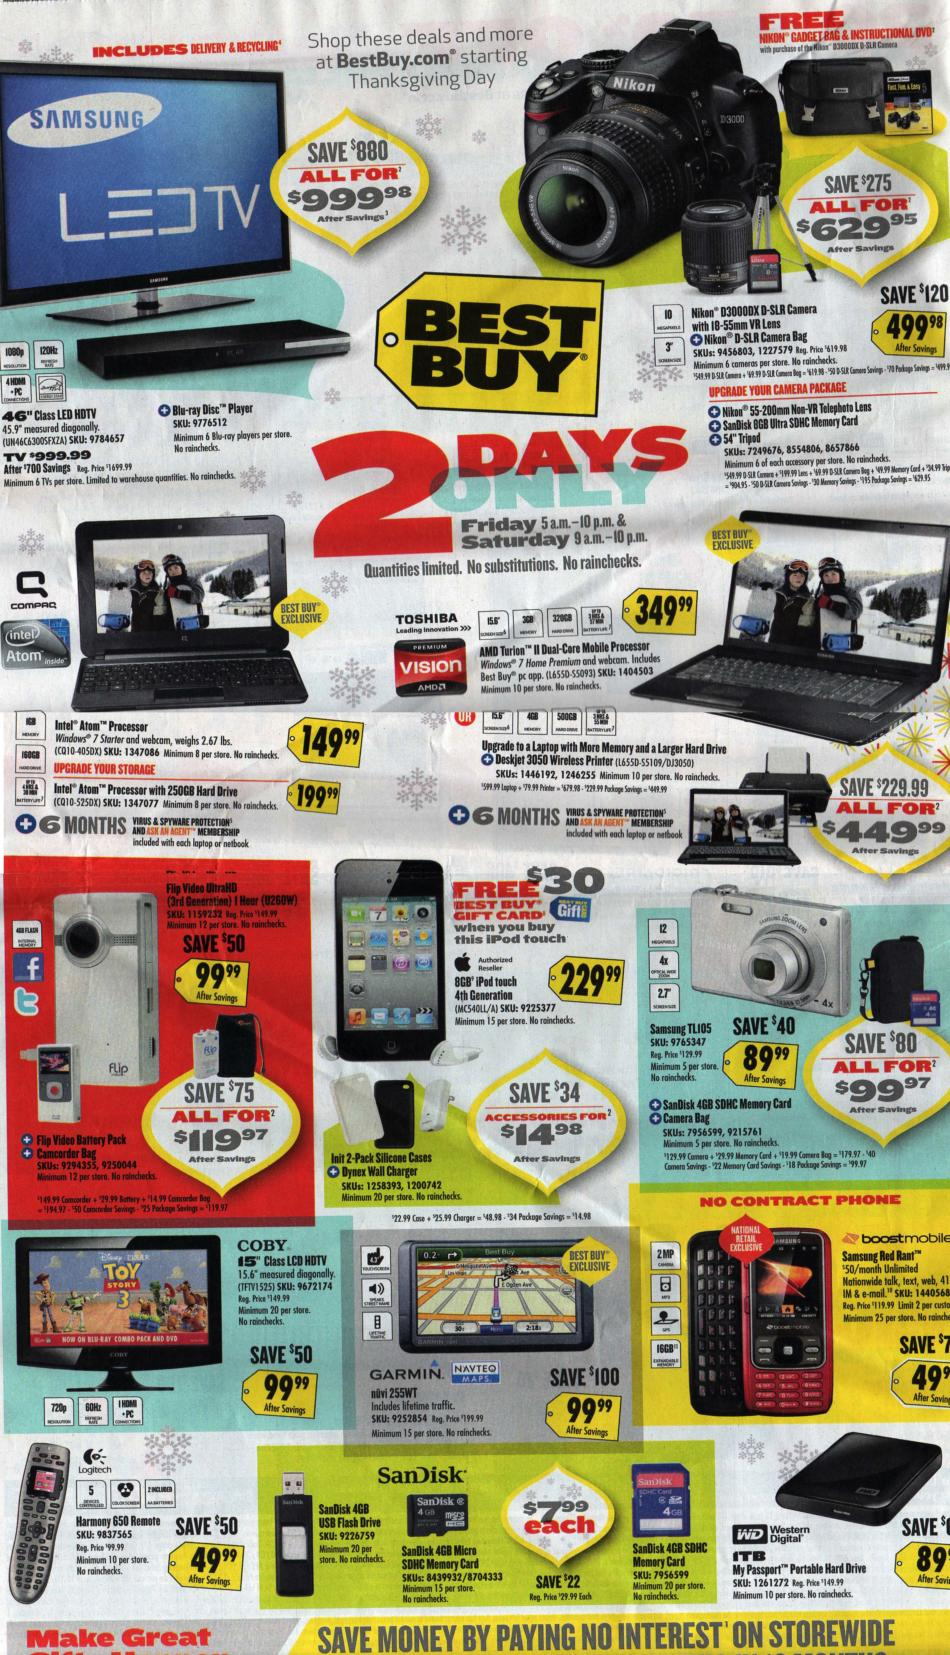 best buy black friday ad 100 images best buy black friday 2011 ad scan  best buy black Guide 2012 Gaming Laptop Looking at Laptop